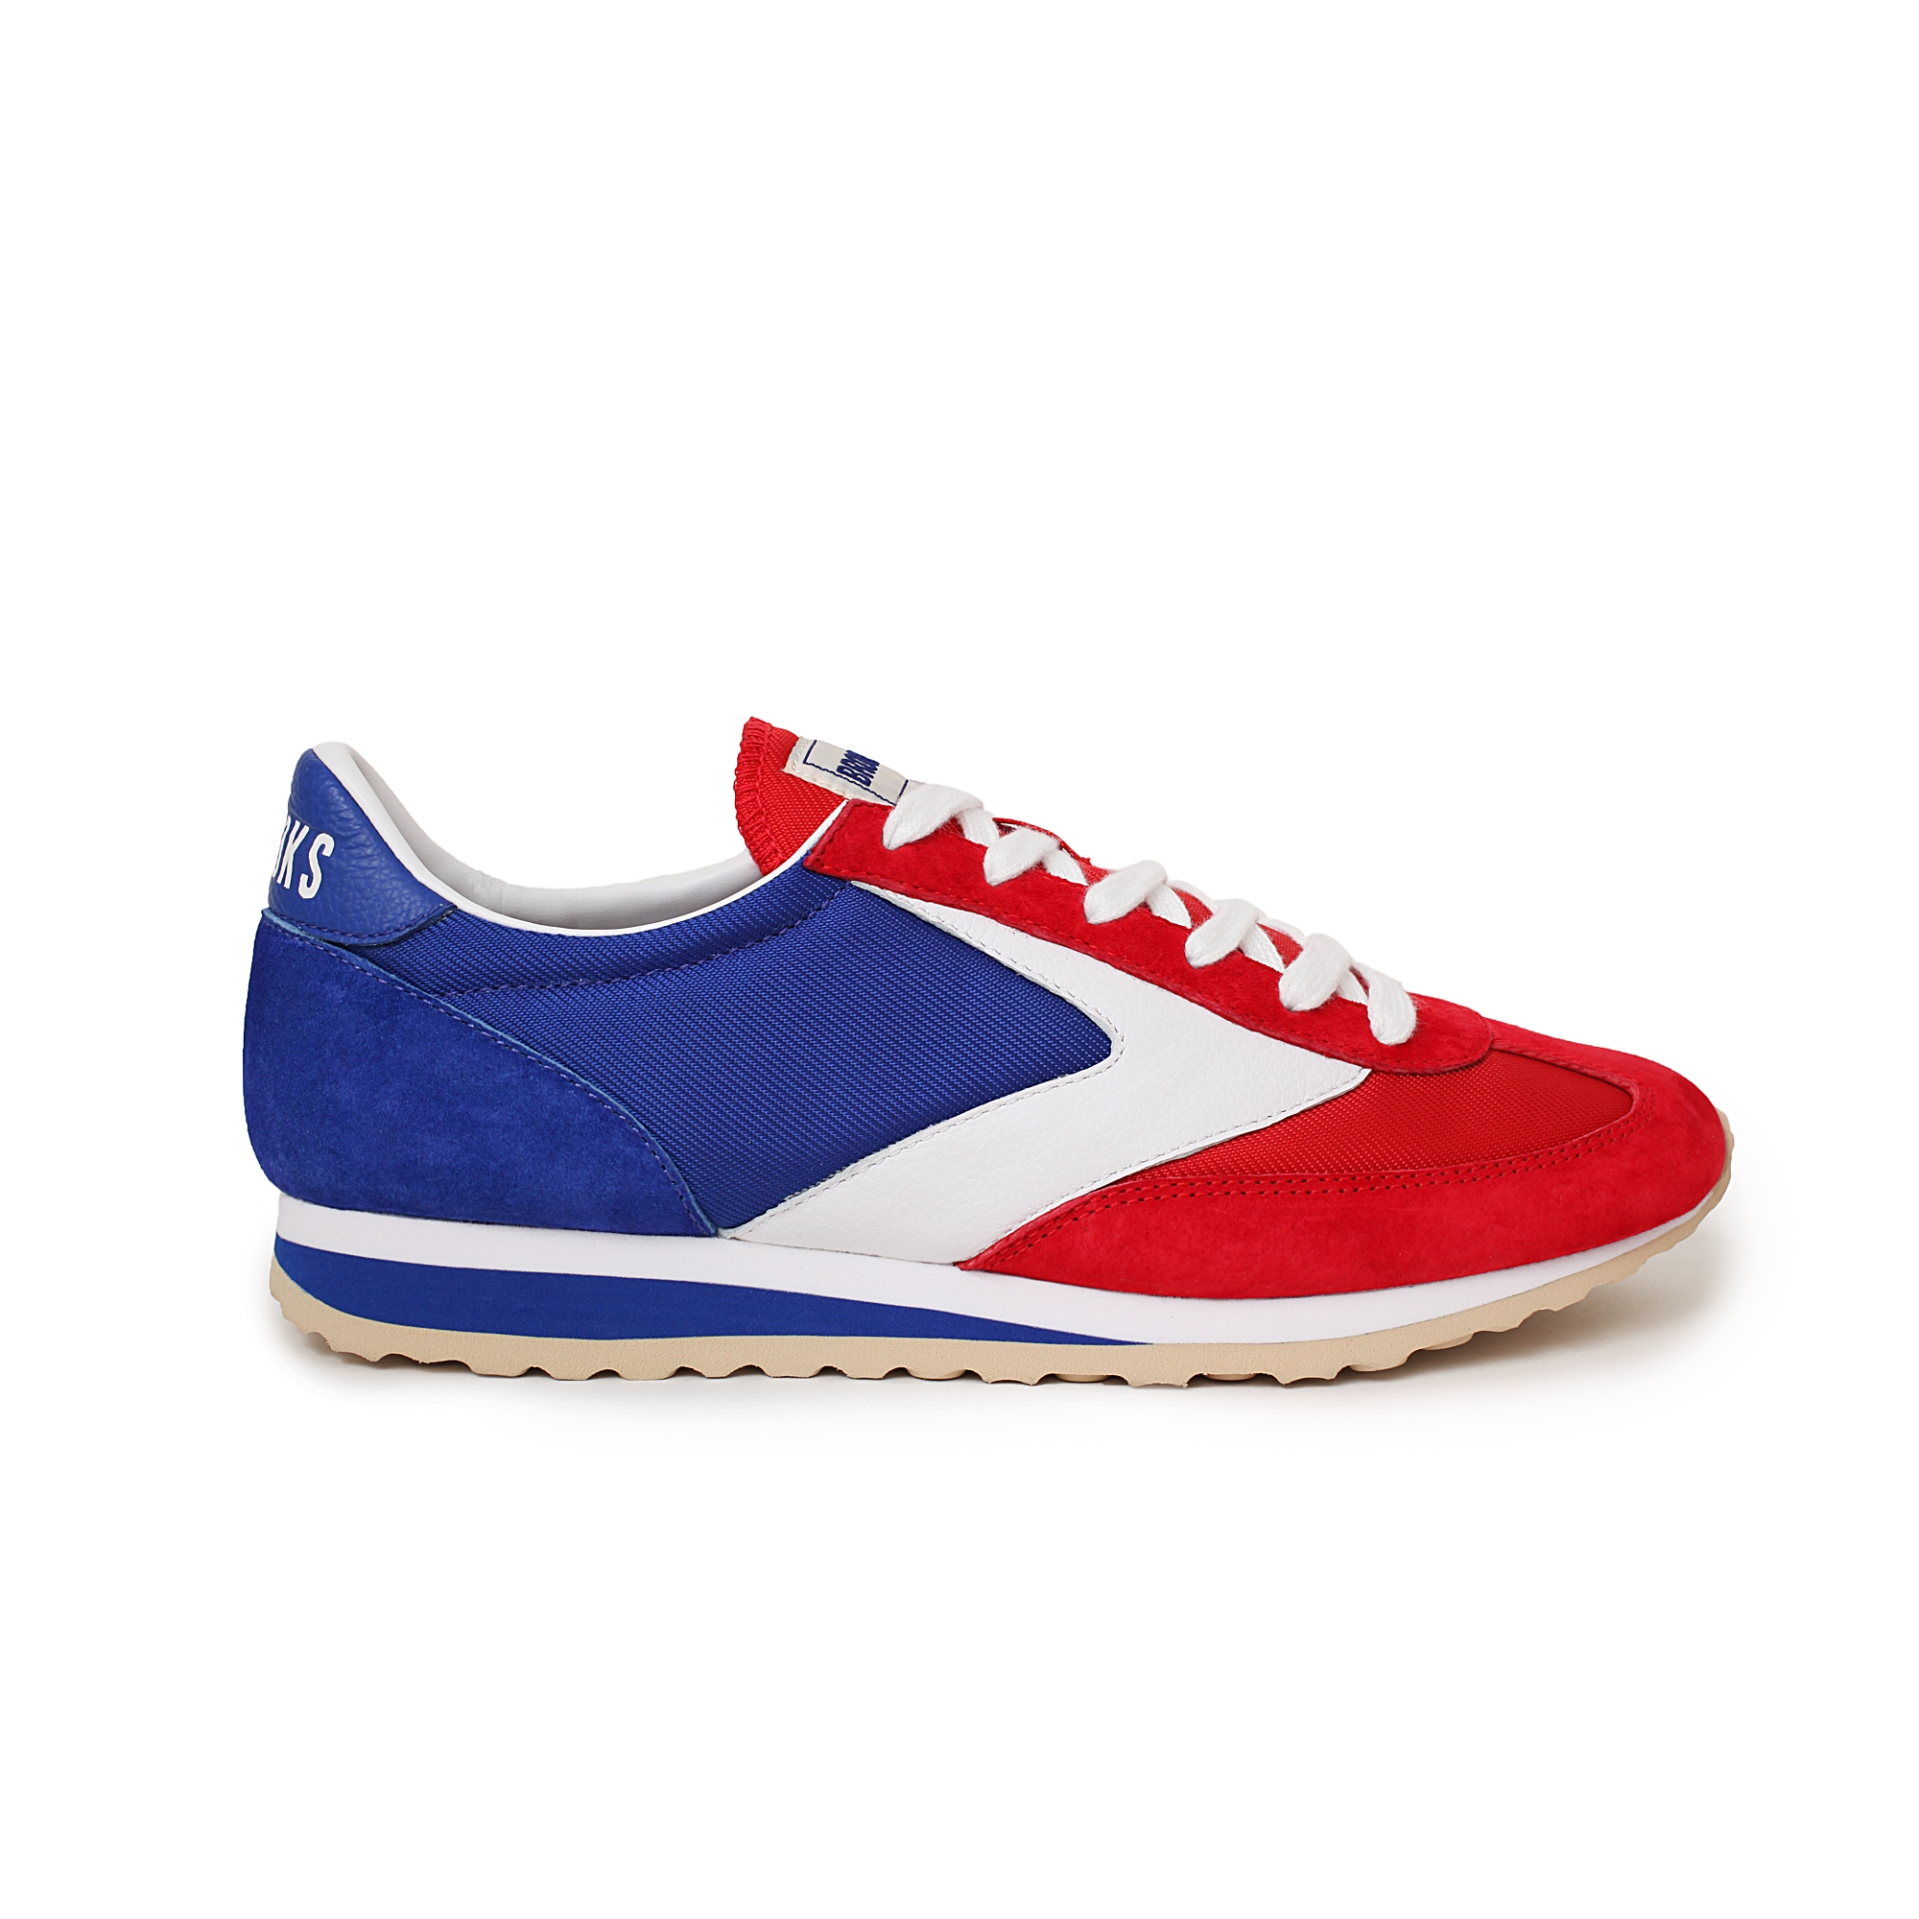 Step Into Summer Right With Brooks Heritage's Decade Vanguard